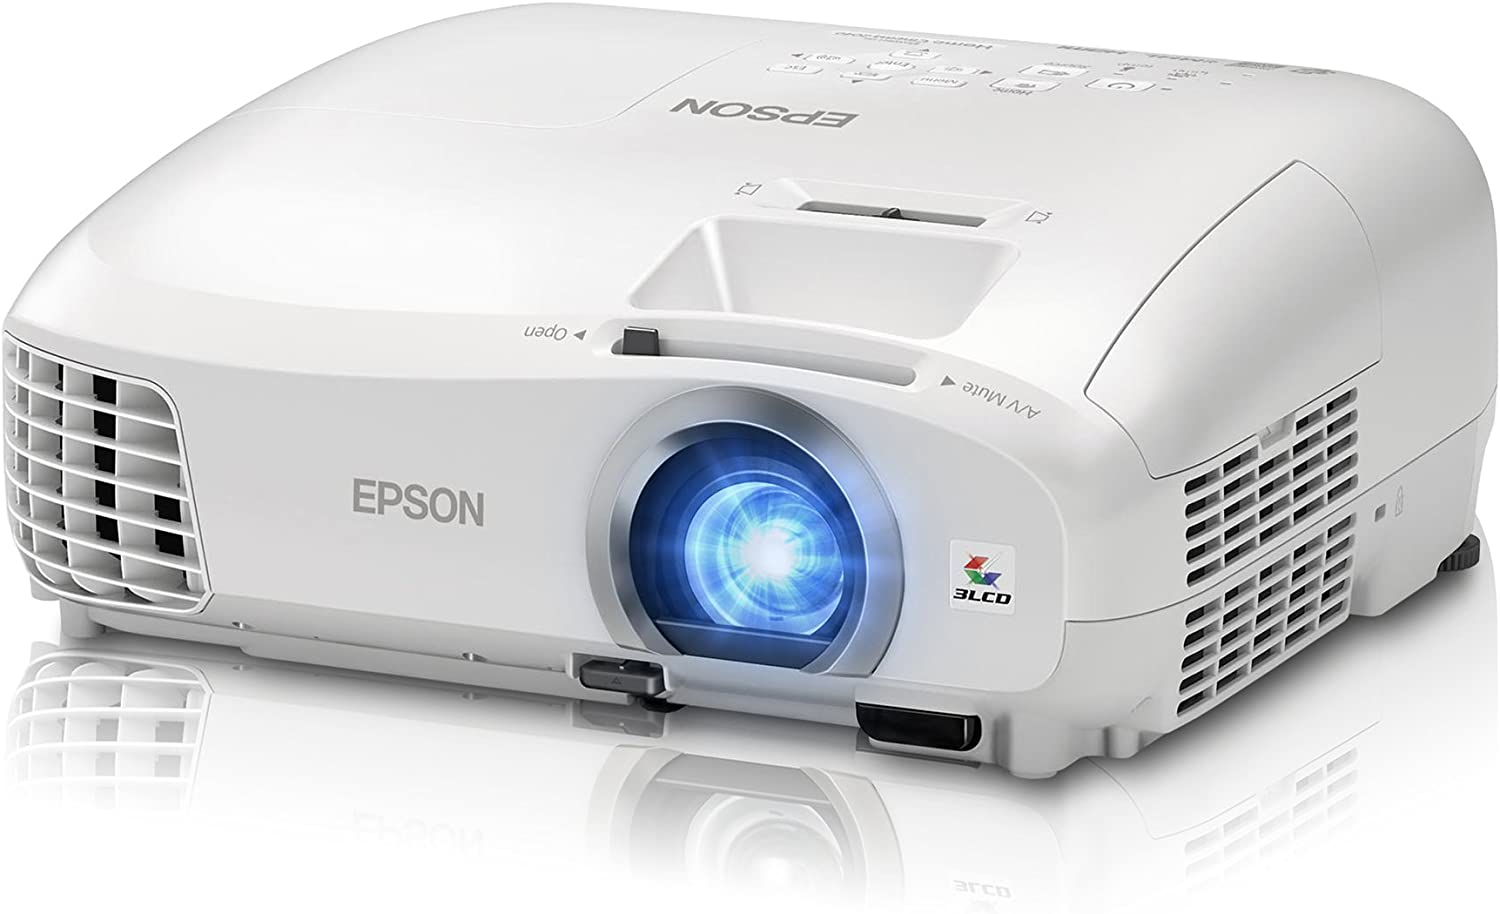 Epson Home Cinema 2040 1080p 3D 3LCD - Best 3D Home Theater Projector